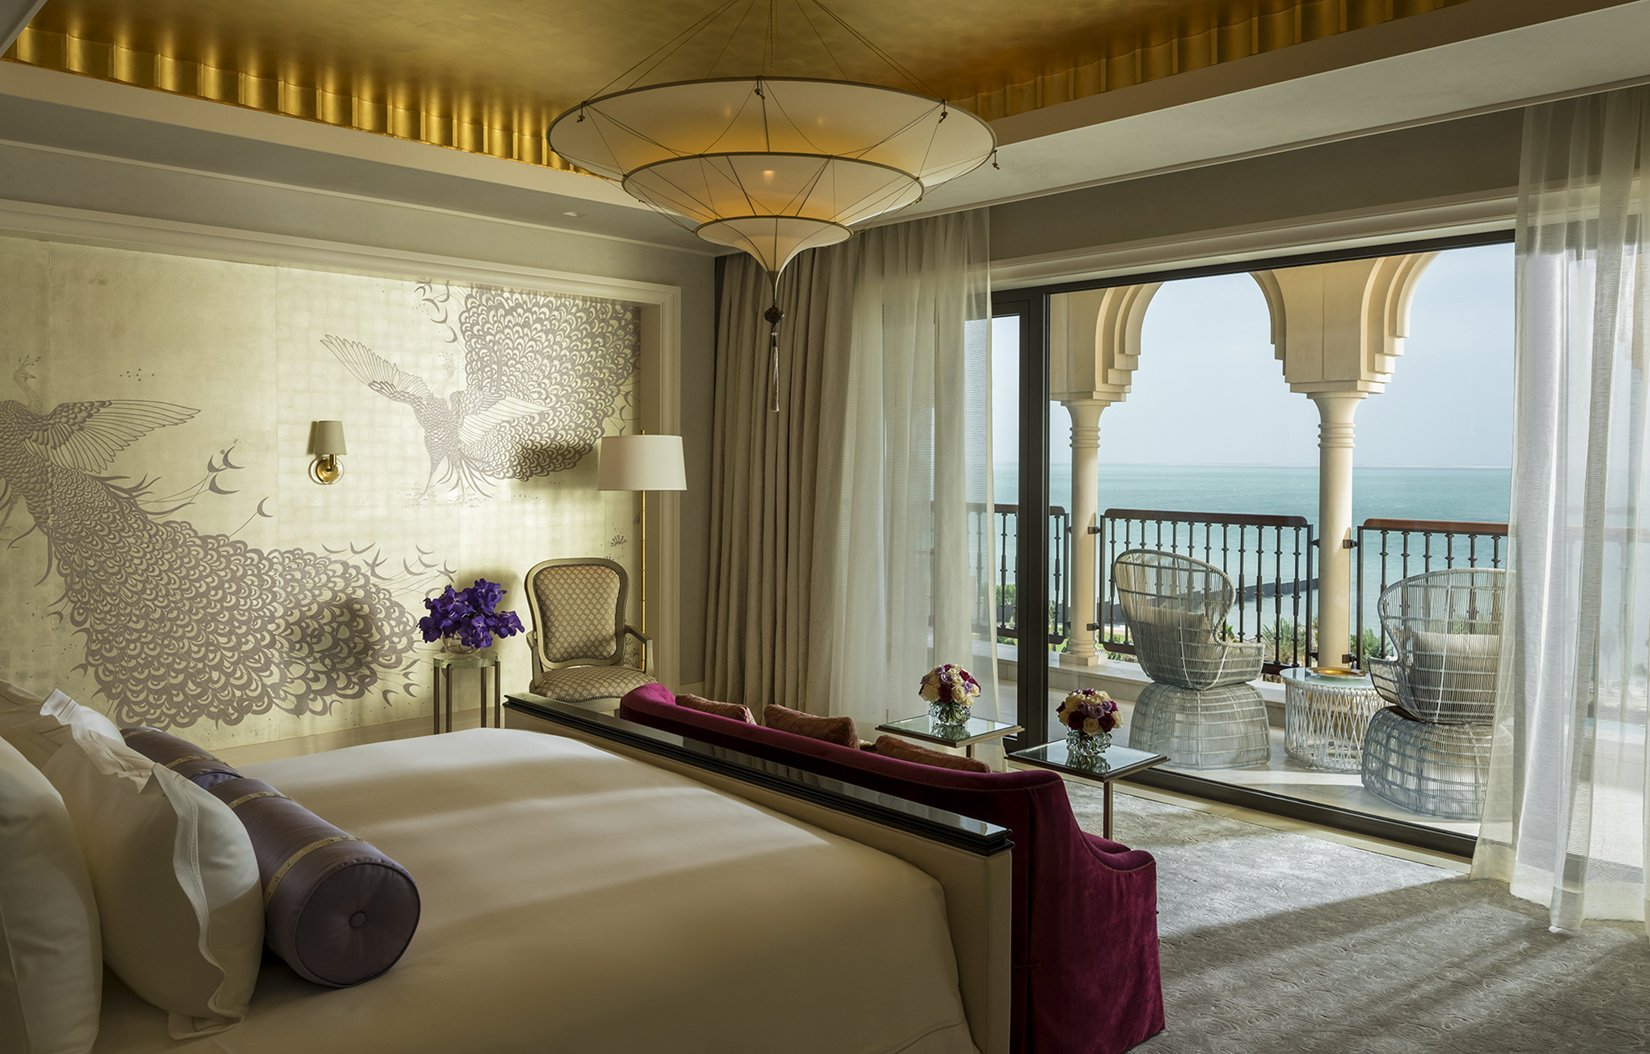 1.-Royal-Suite-at-Four-Seasons-Hotel--Jumeirah-Beach--Dubai.--Whistler-Peacocks--design-in-custom-colourway-on-12-Carat-White-Gold-gilded-silk-yeet-magazine